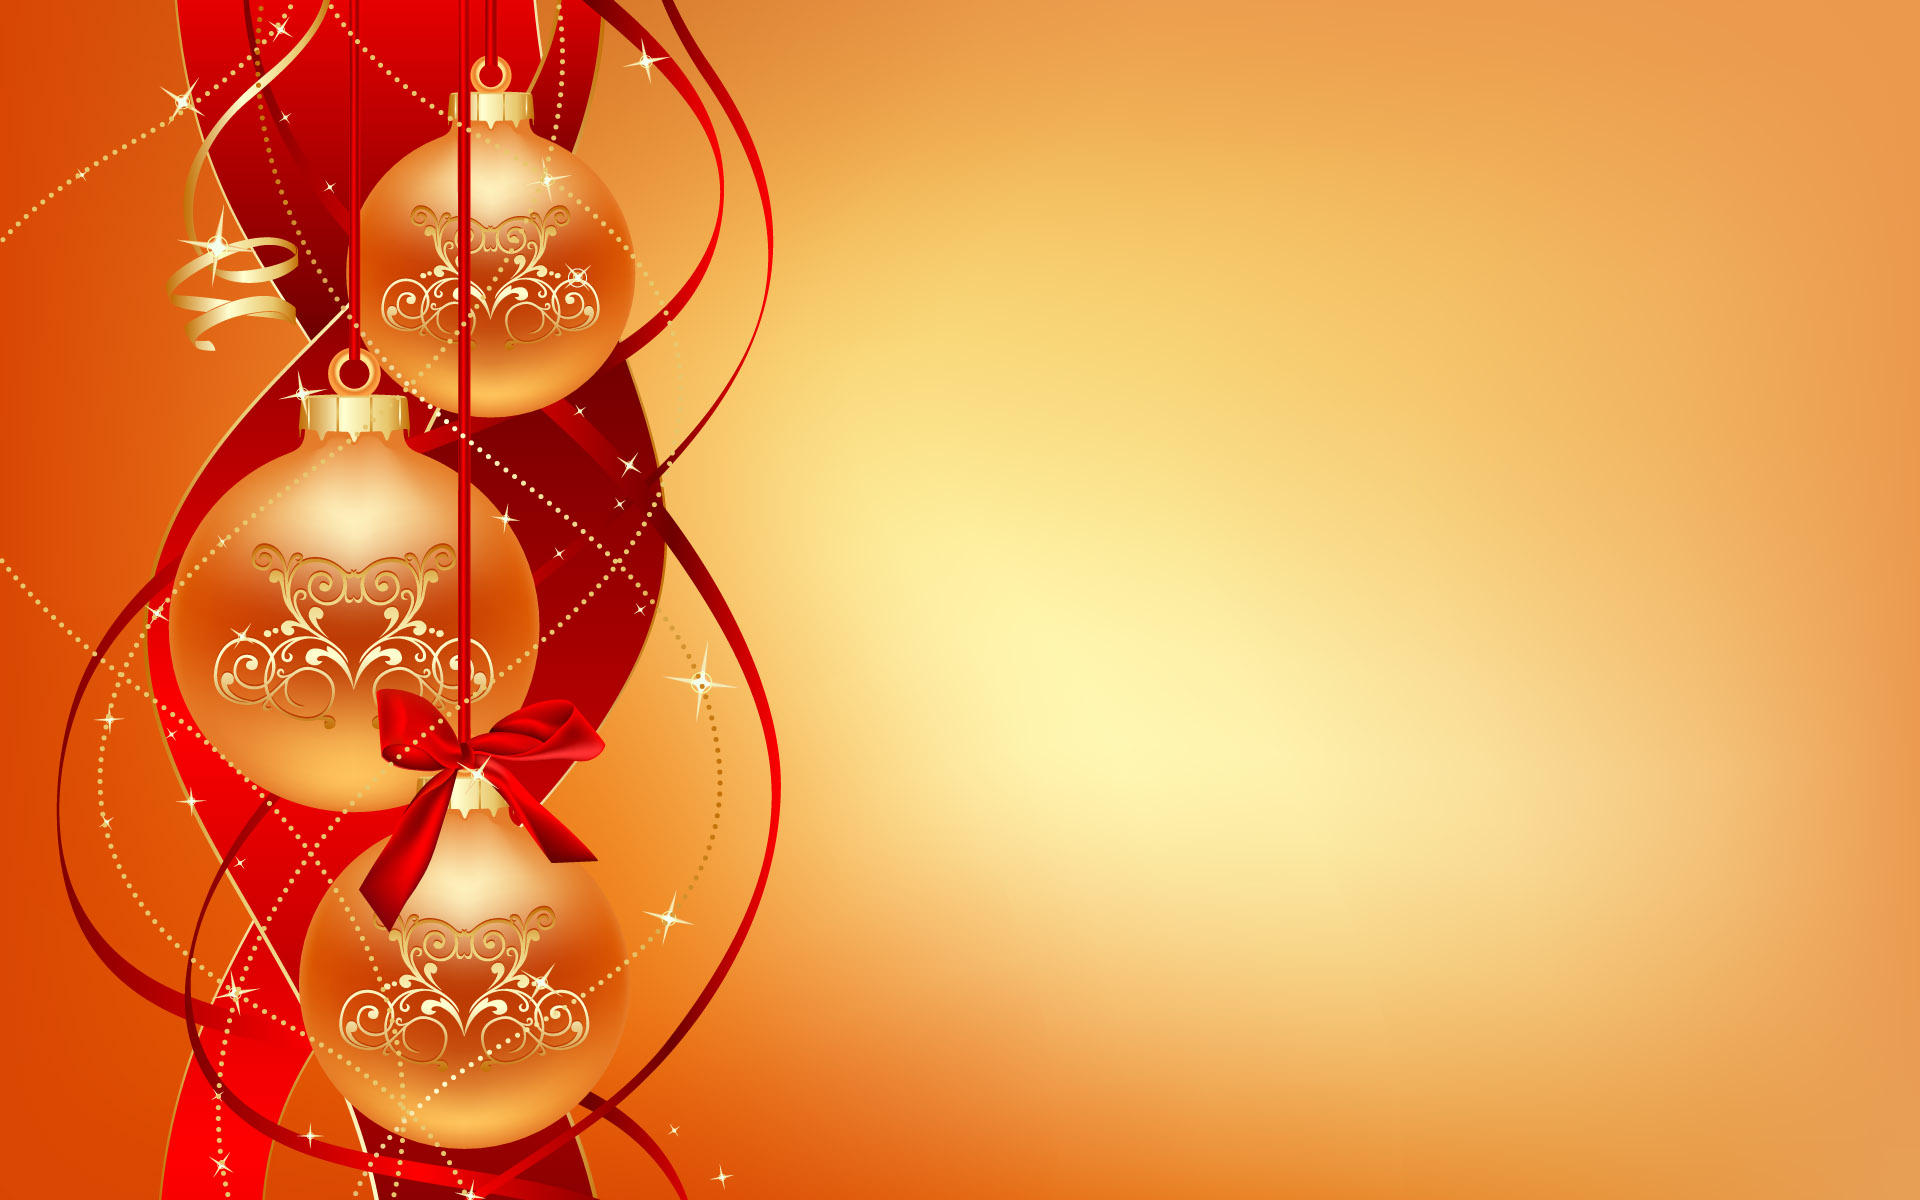 Christmas Backgrounds Wallpapers (22 Wallpapers) | Adorable Wallpapers